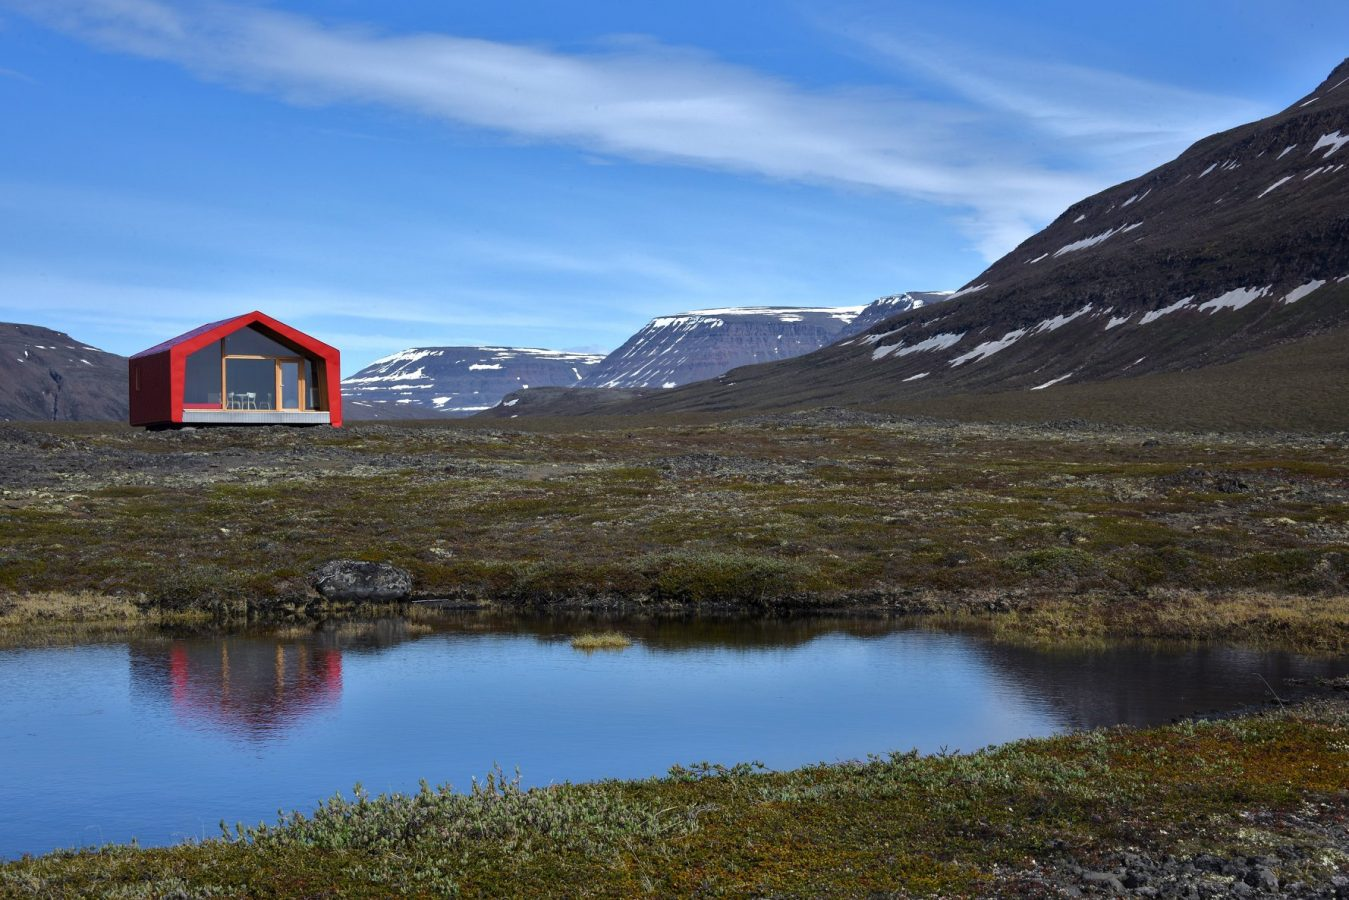 The Ariston Comfort Challenge Frame near lake Greenland